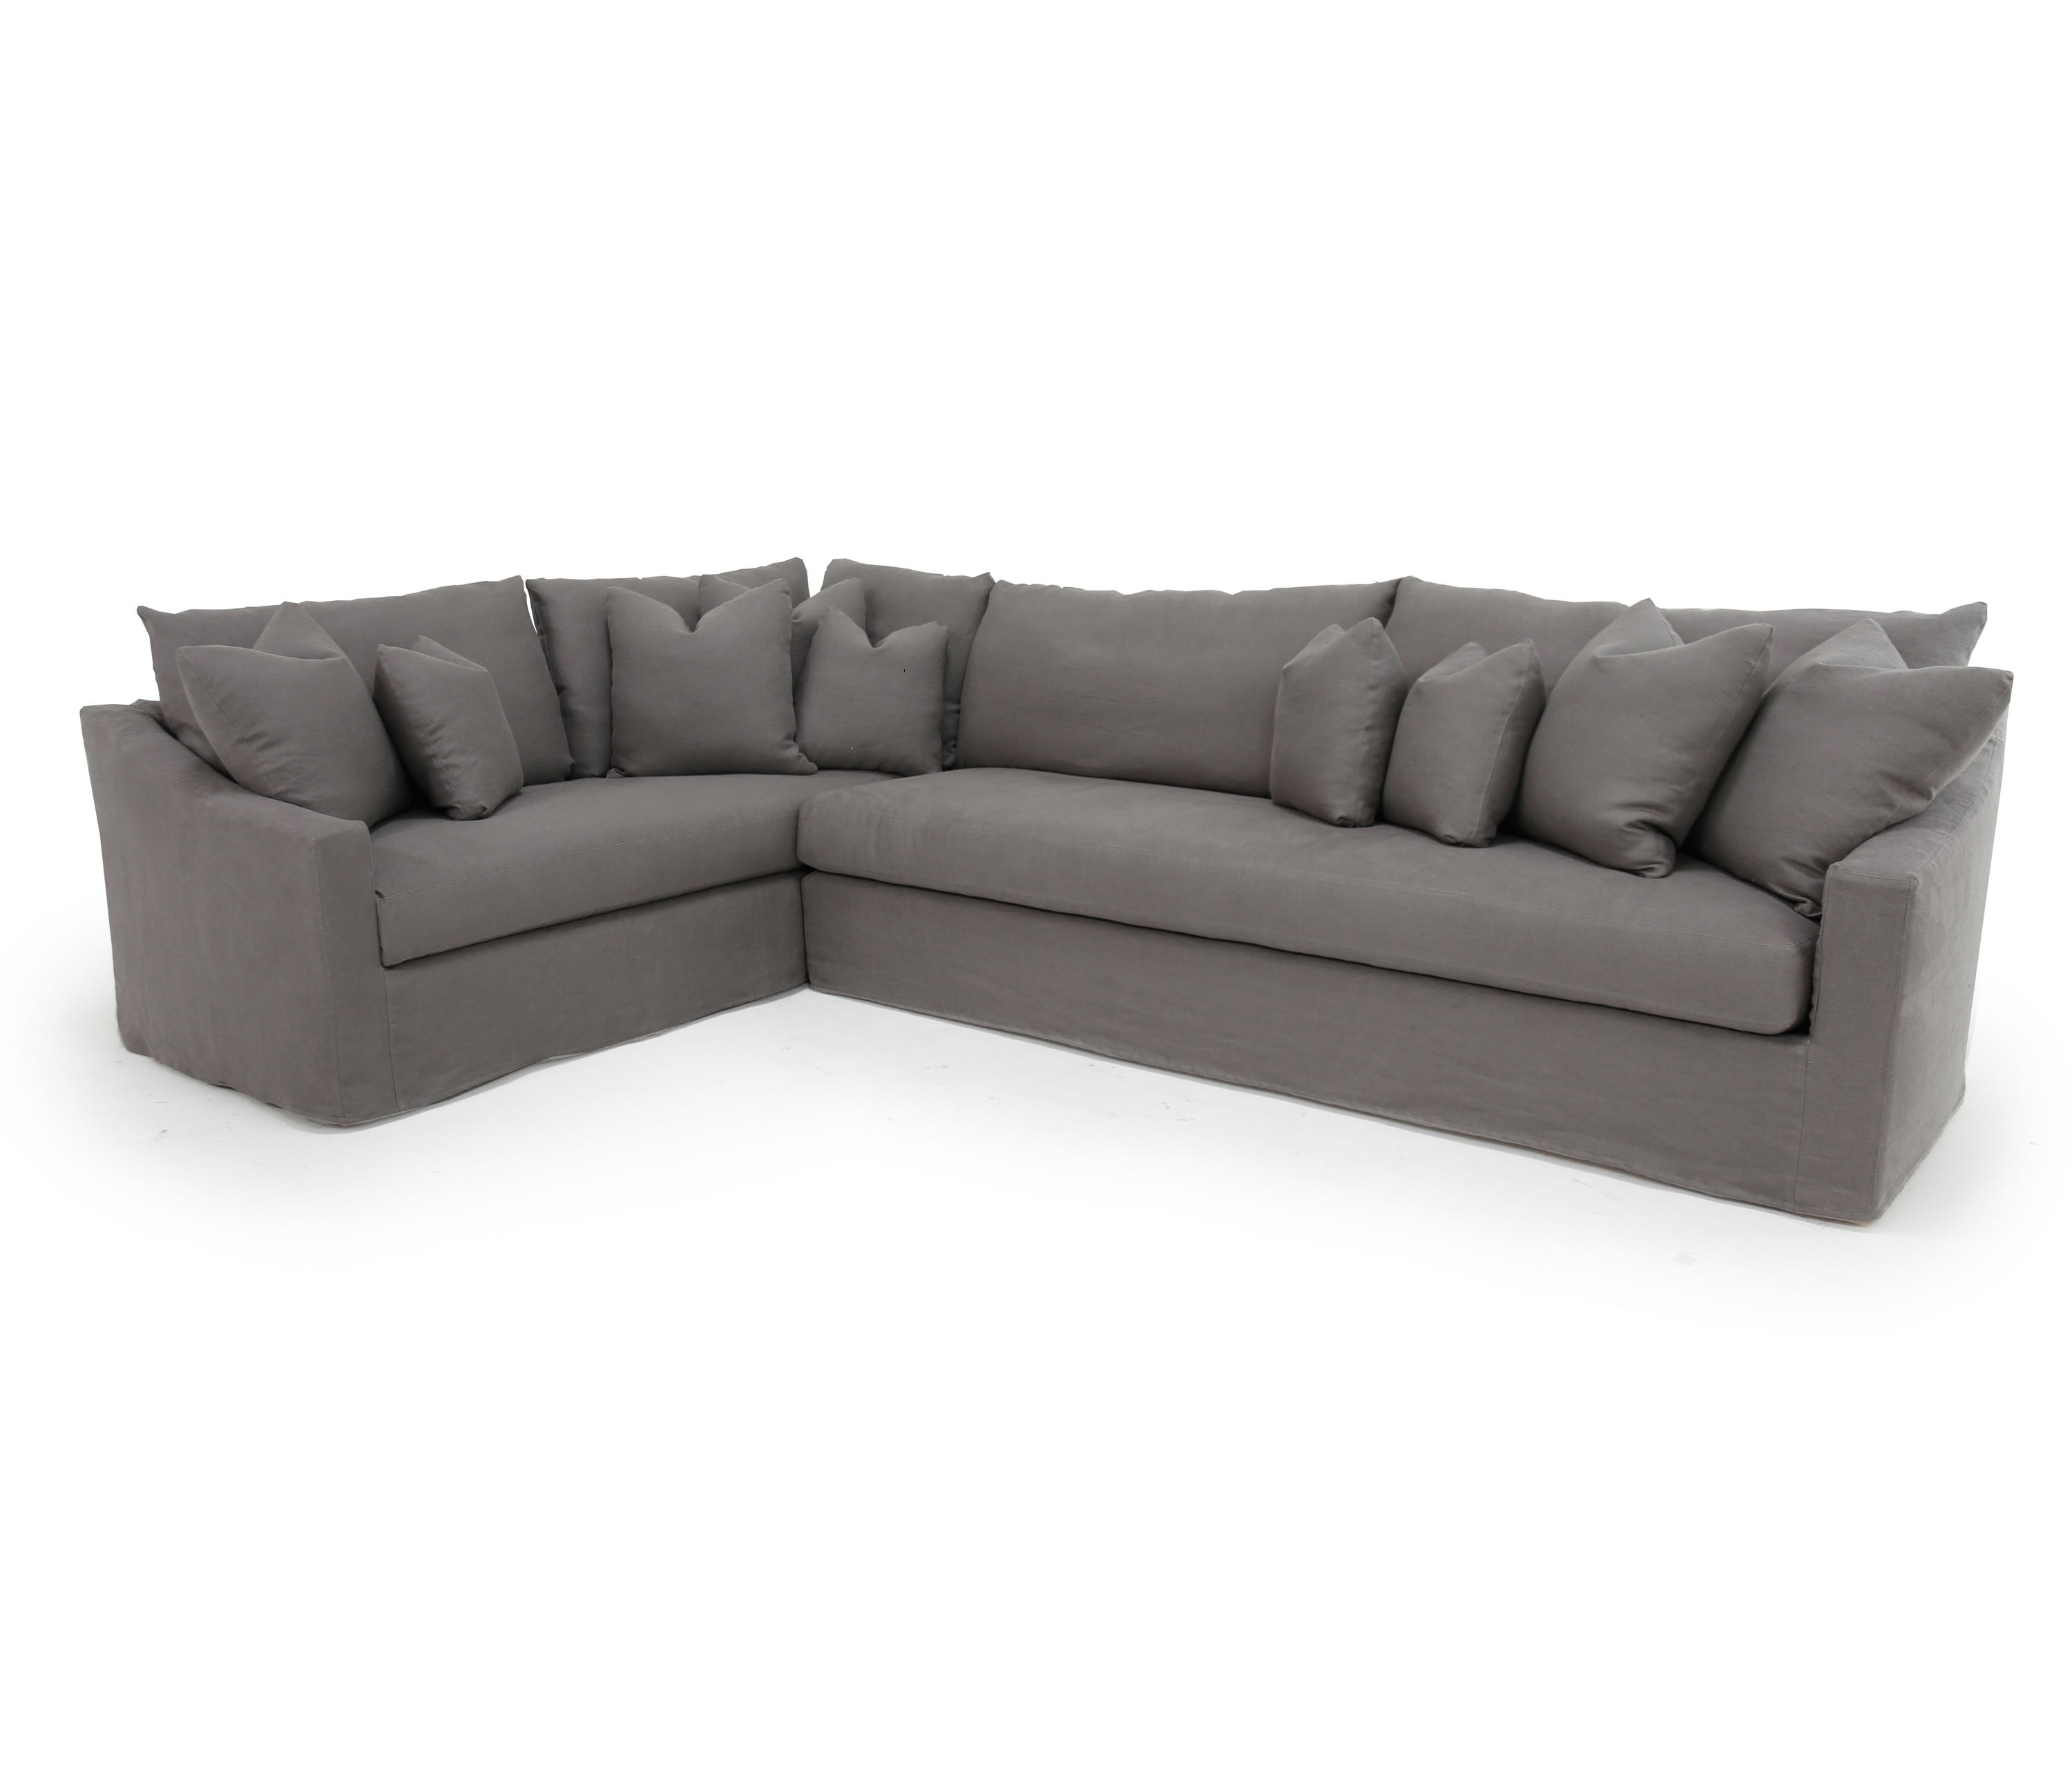 Duke | Sofa by Verellen | Sofas  sc 1 st  Architonic : verellen sectional - Sectionals, Sofas & Couches